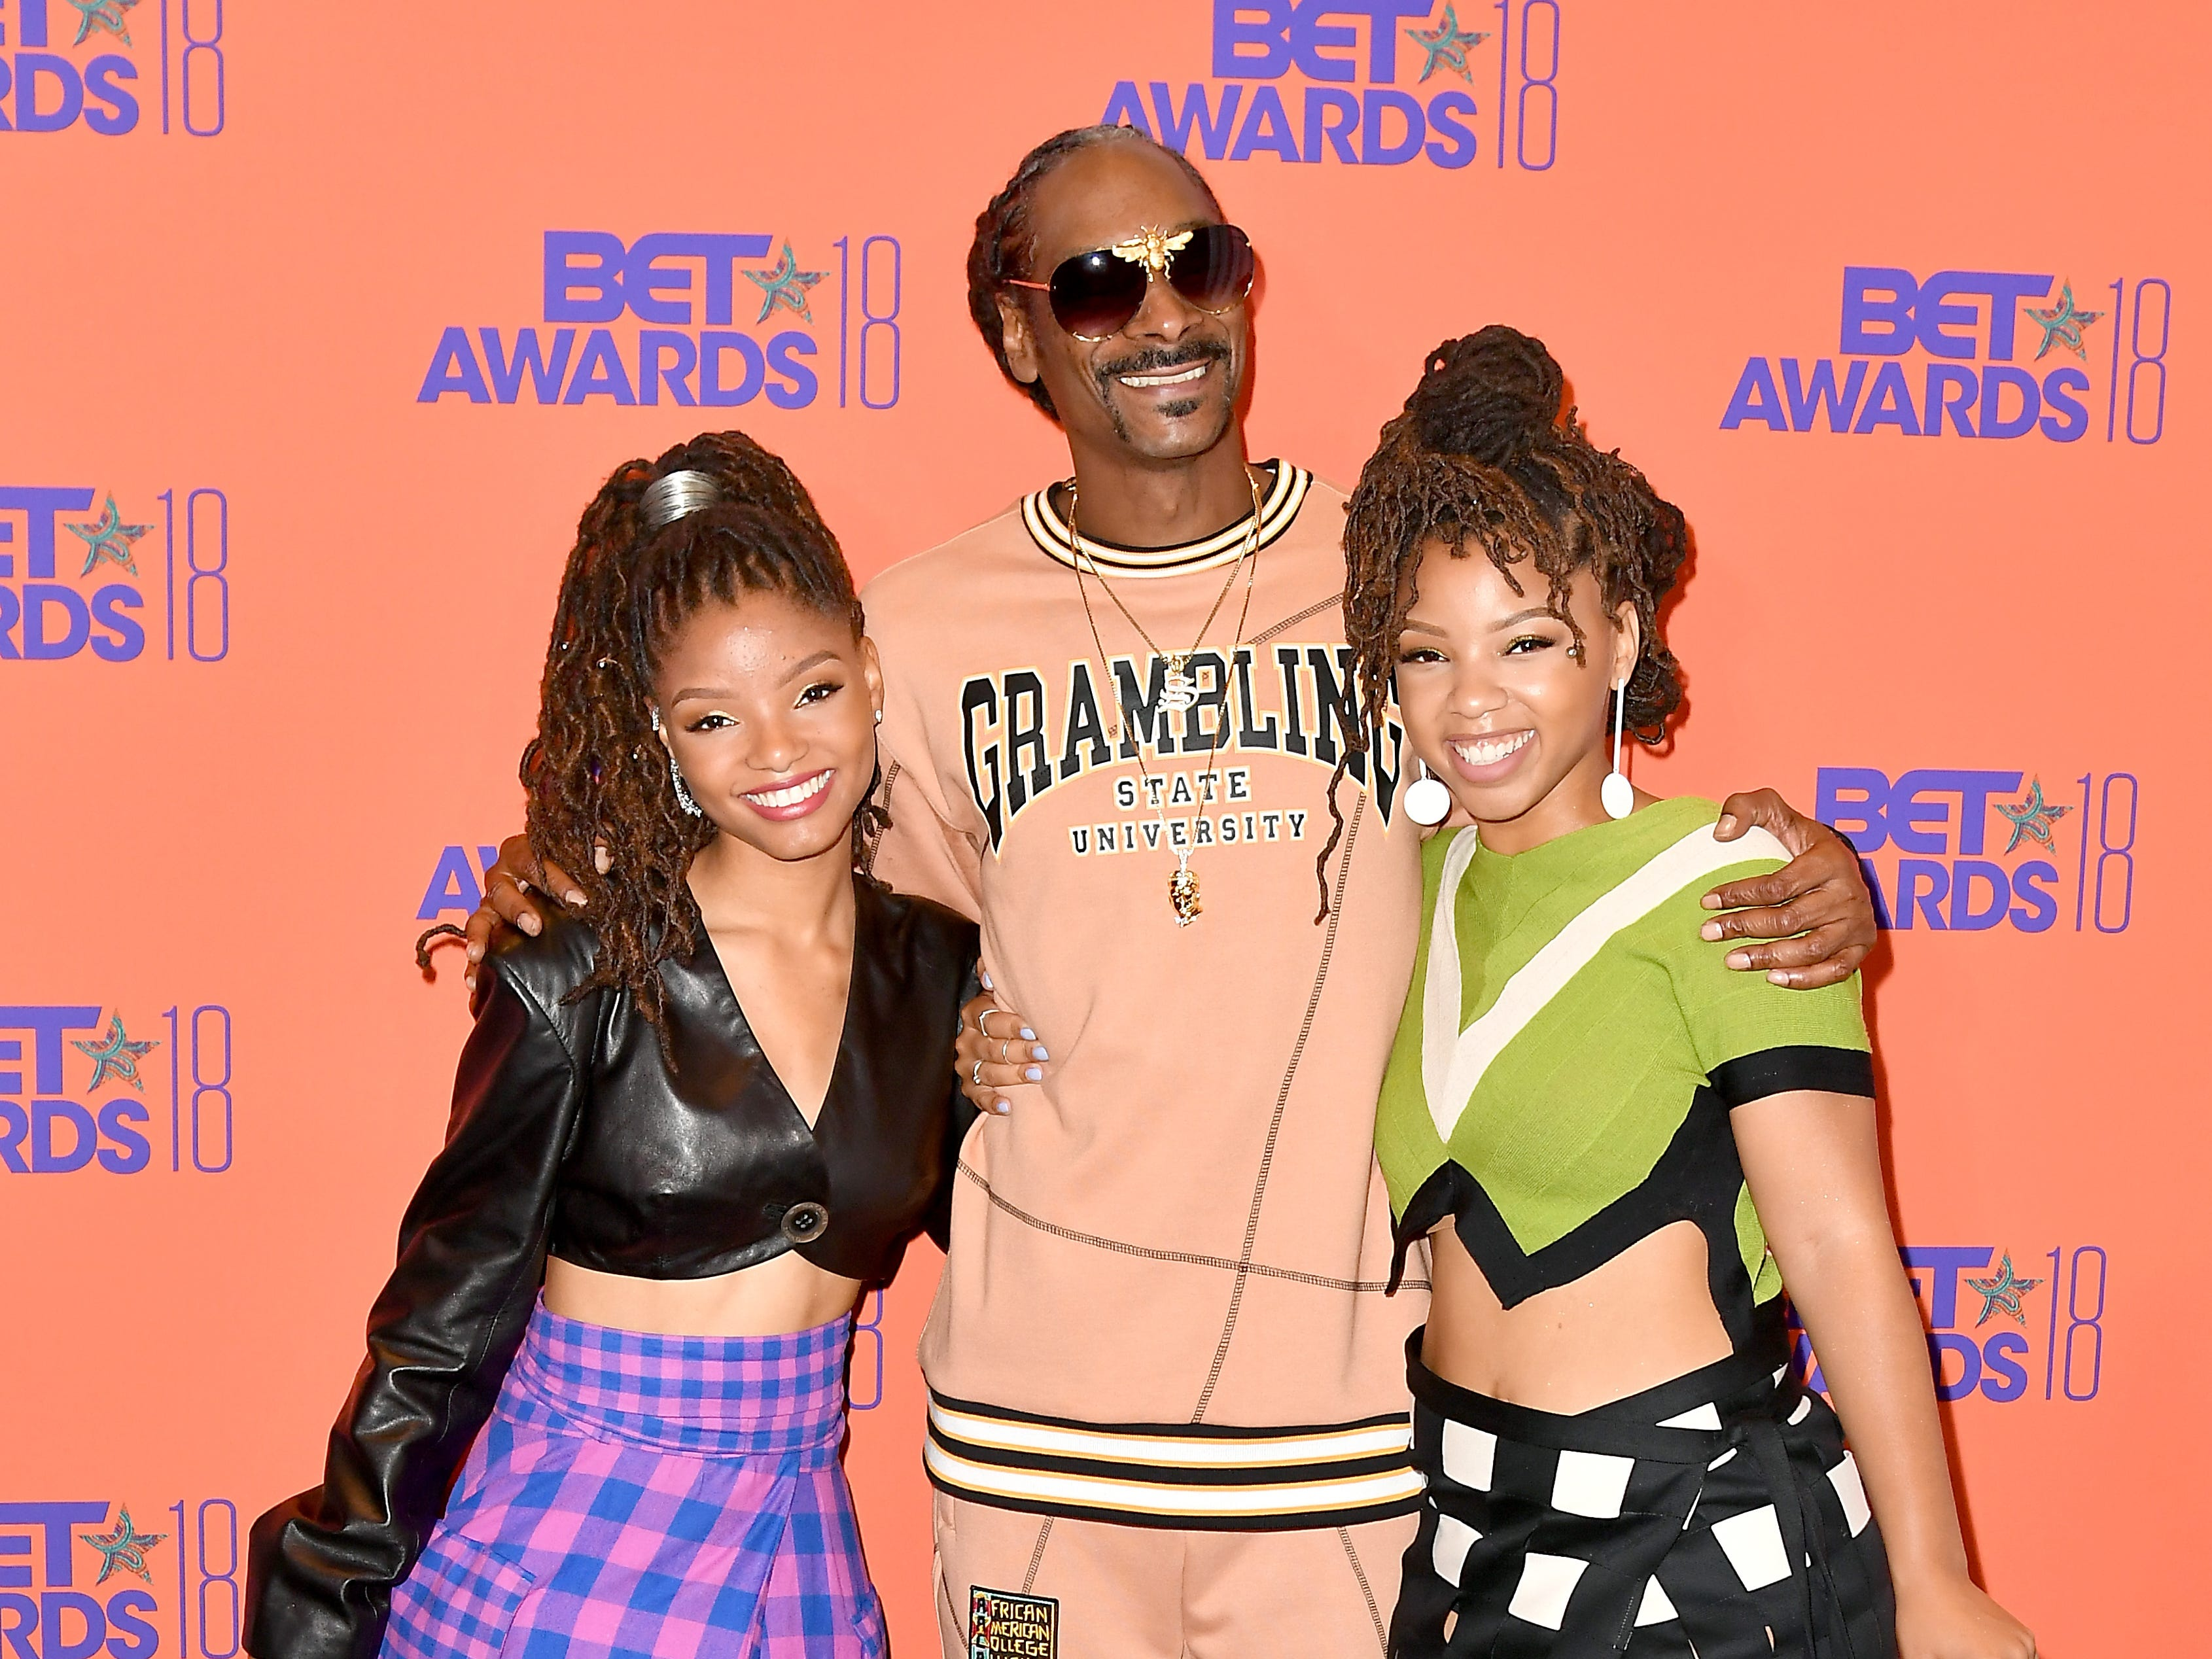 June 24:  Snoop Dogg poses with Halle Bailey and Chloe Bailey of Chloe X Halle at the 2018 BET Awards in Los Angeles.